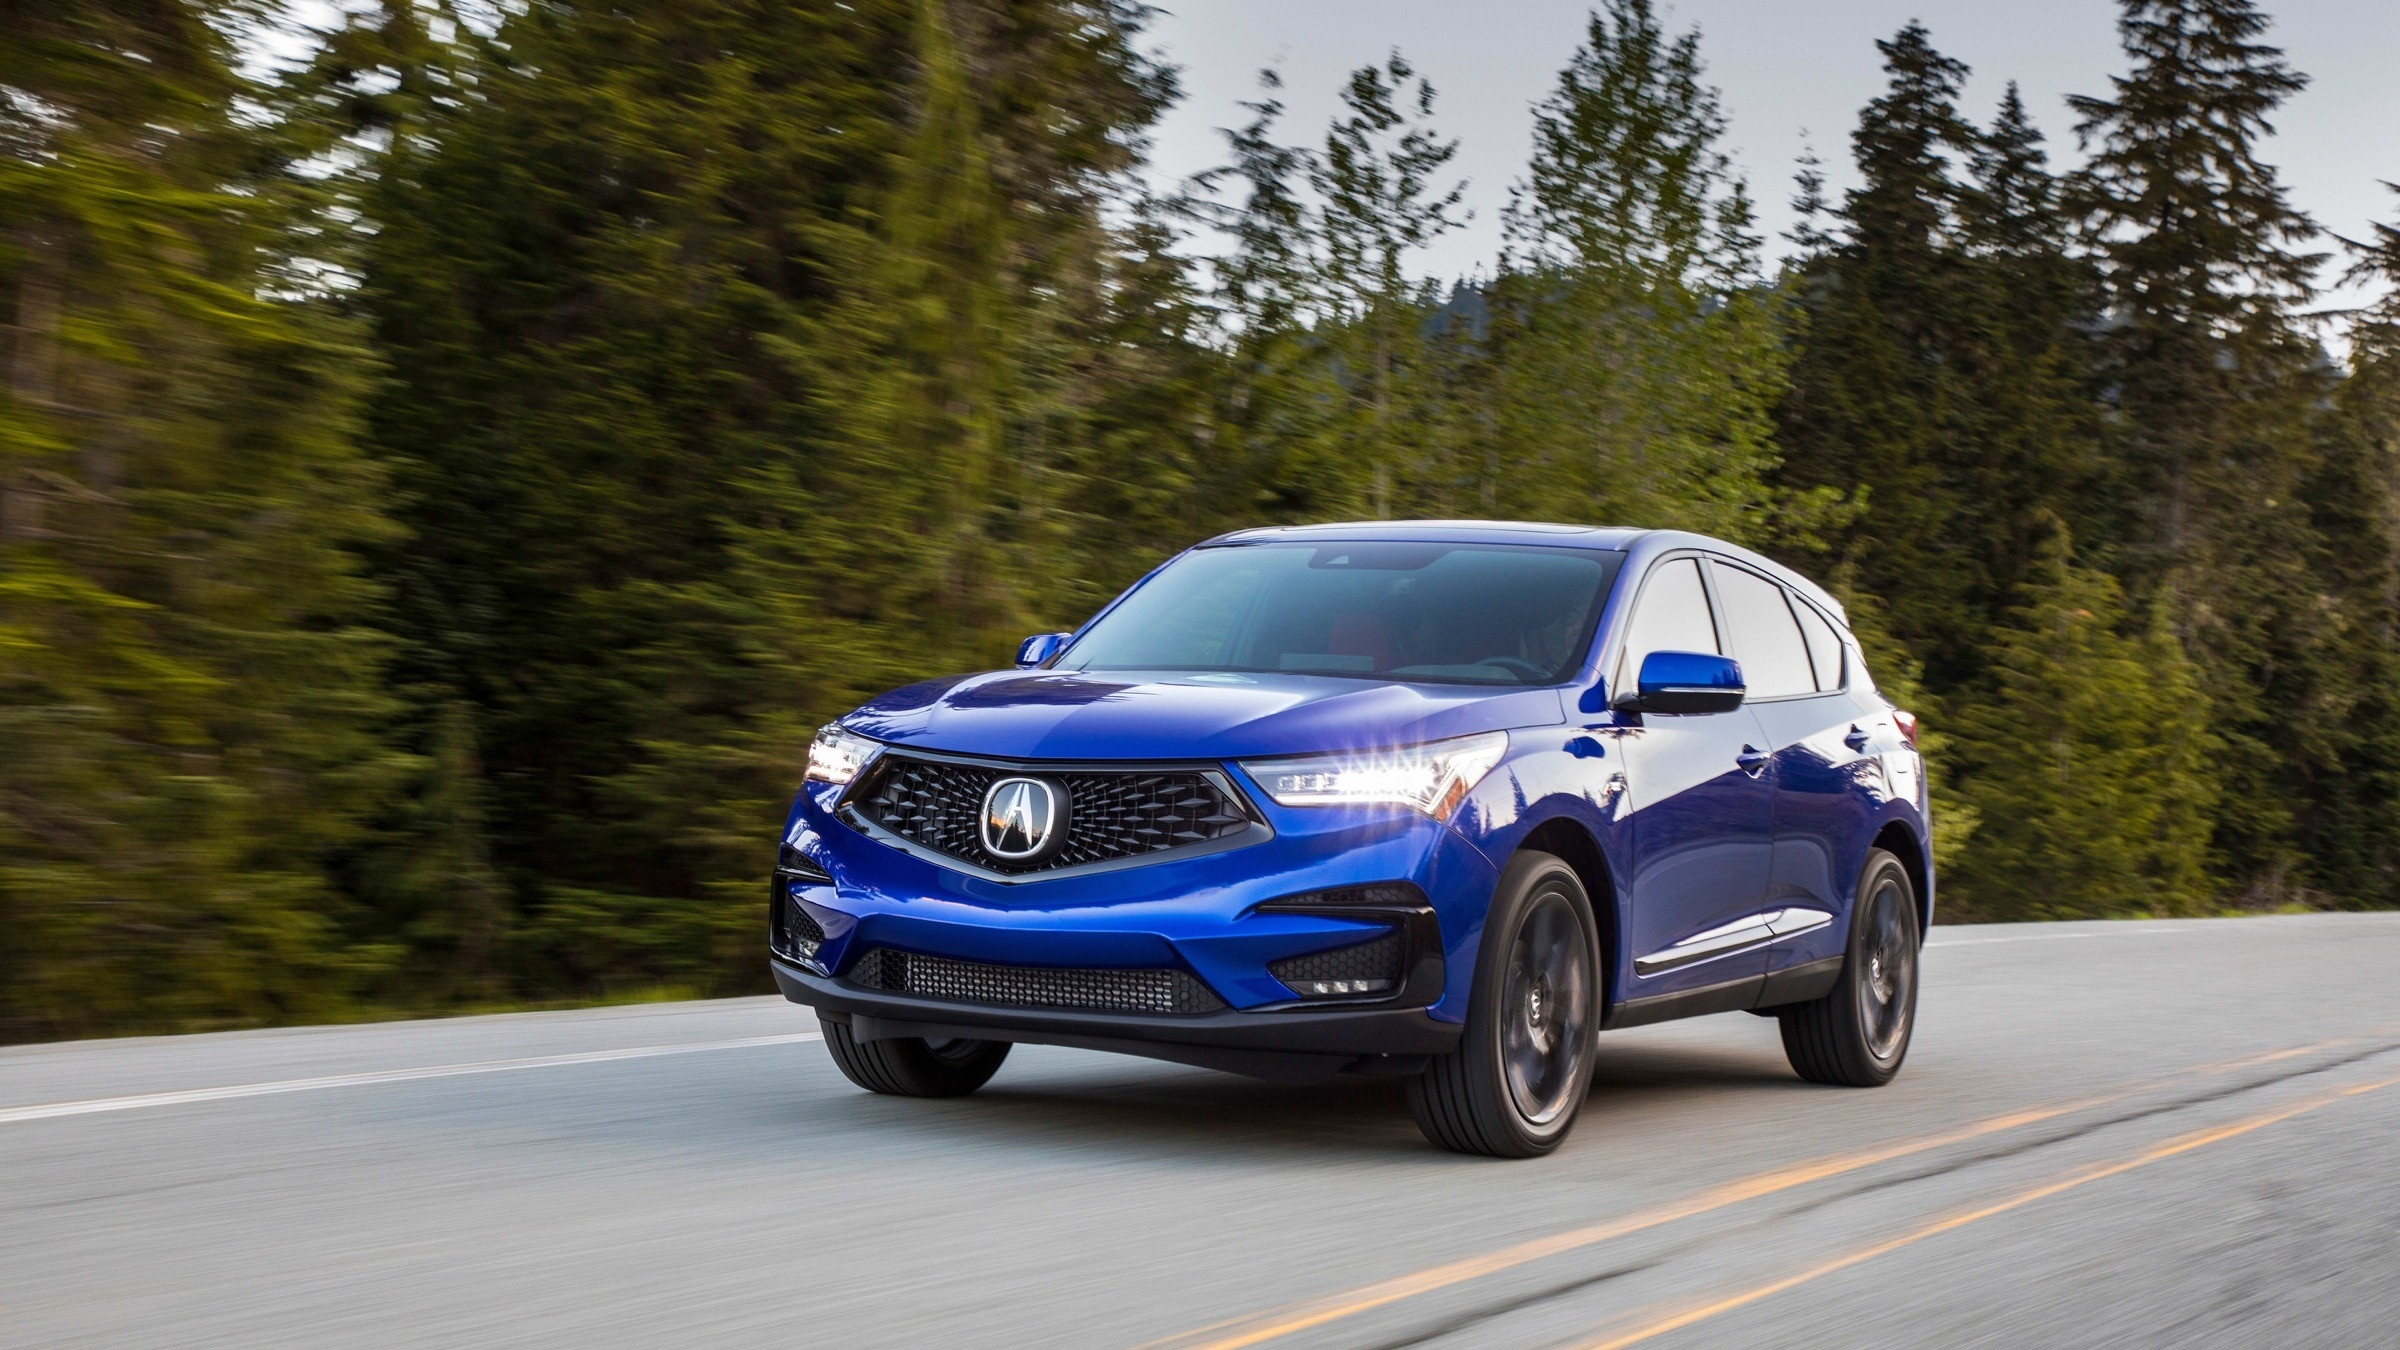 2020 Acura Rdx Review And Buying Guide | Specs, Features  Grade R Back Pay 2020